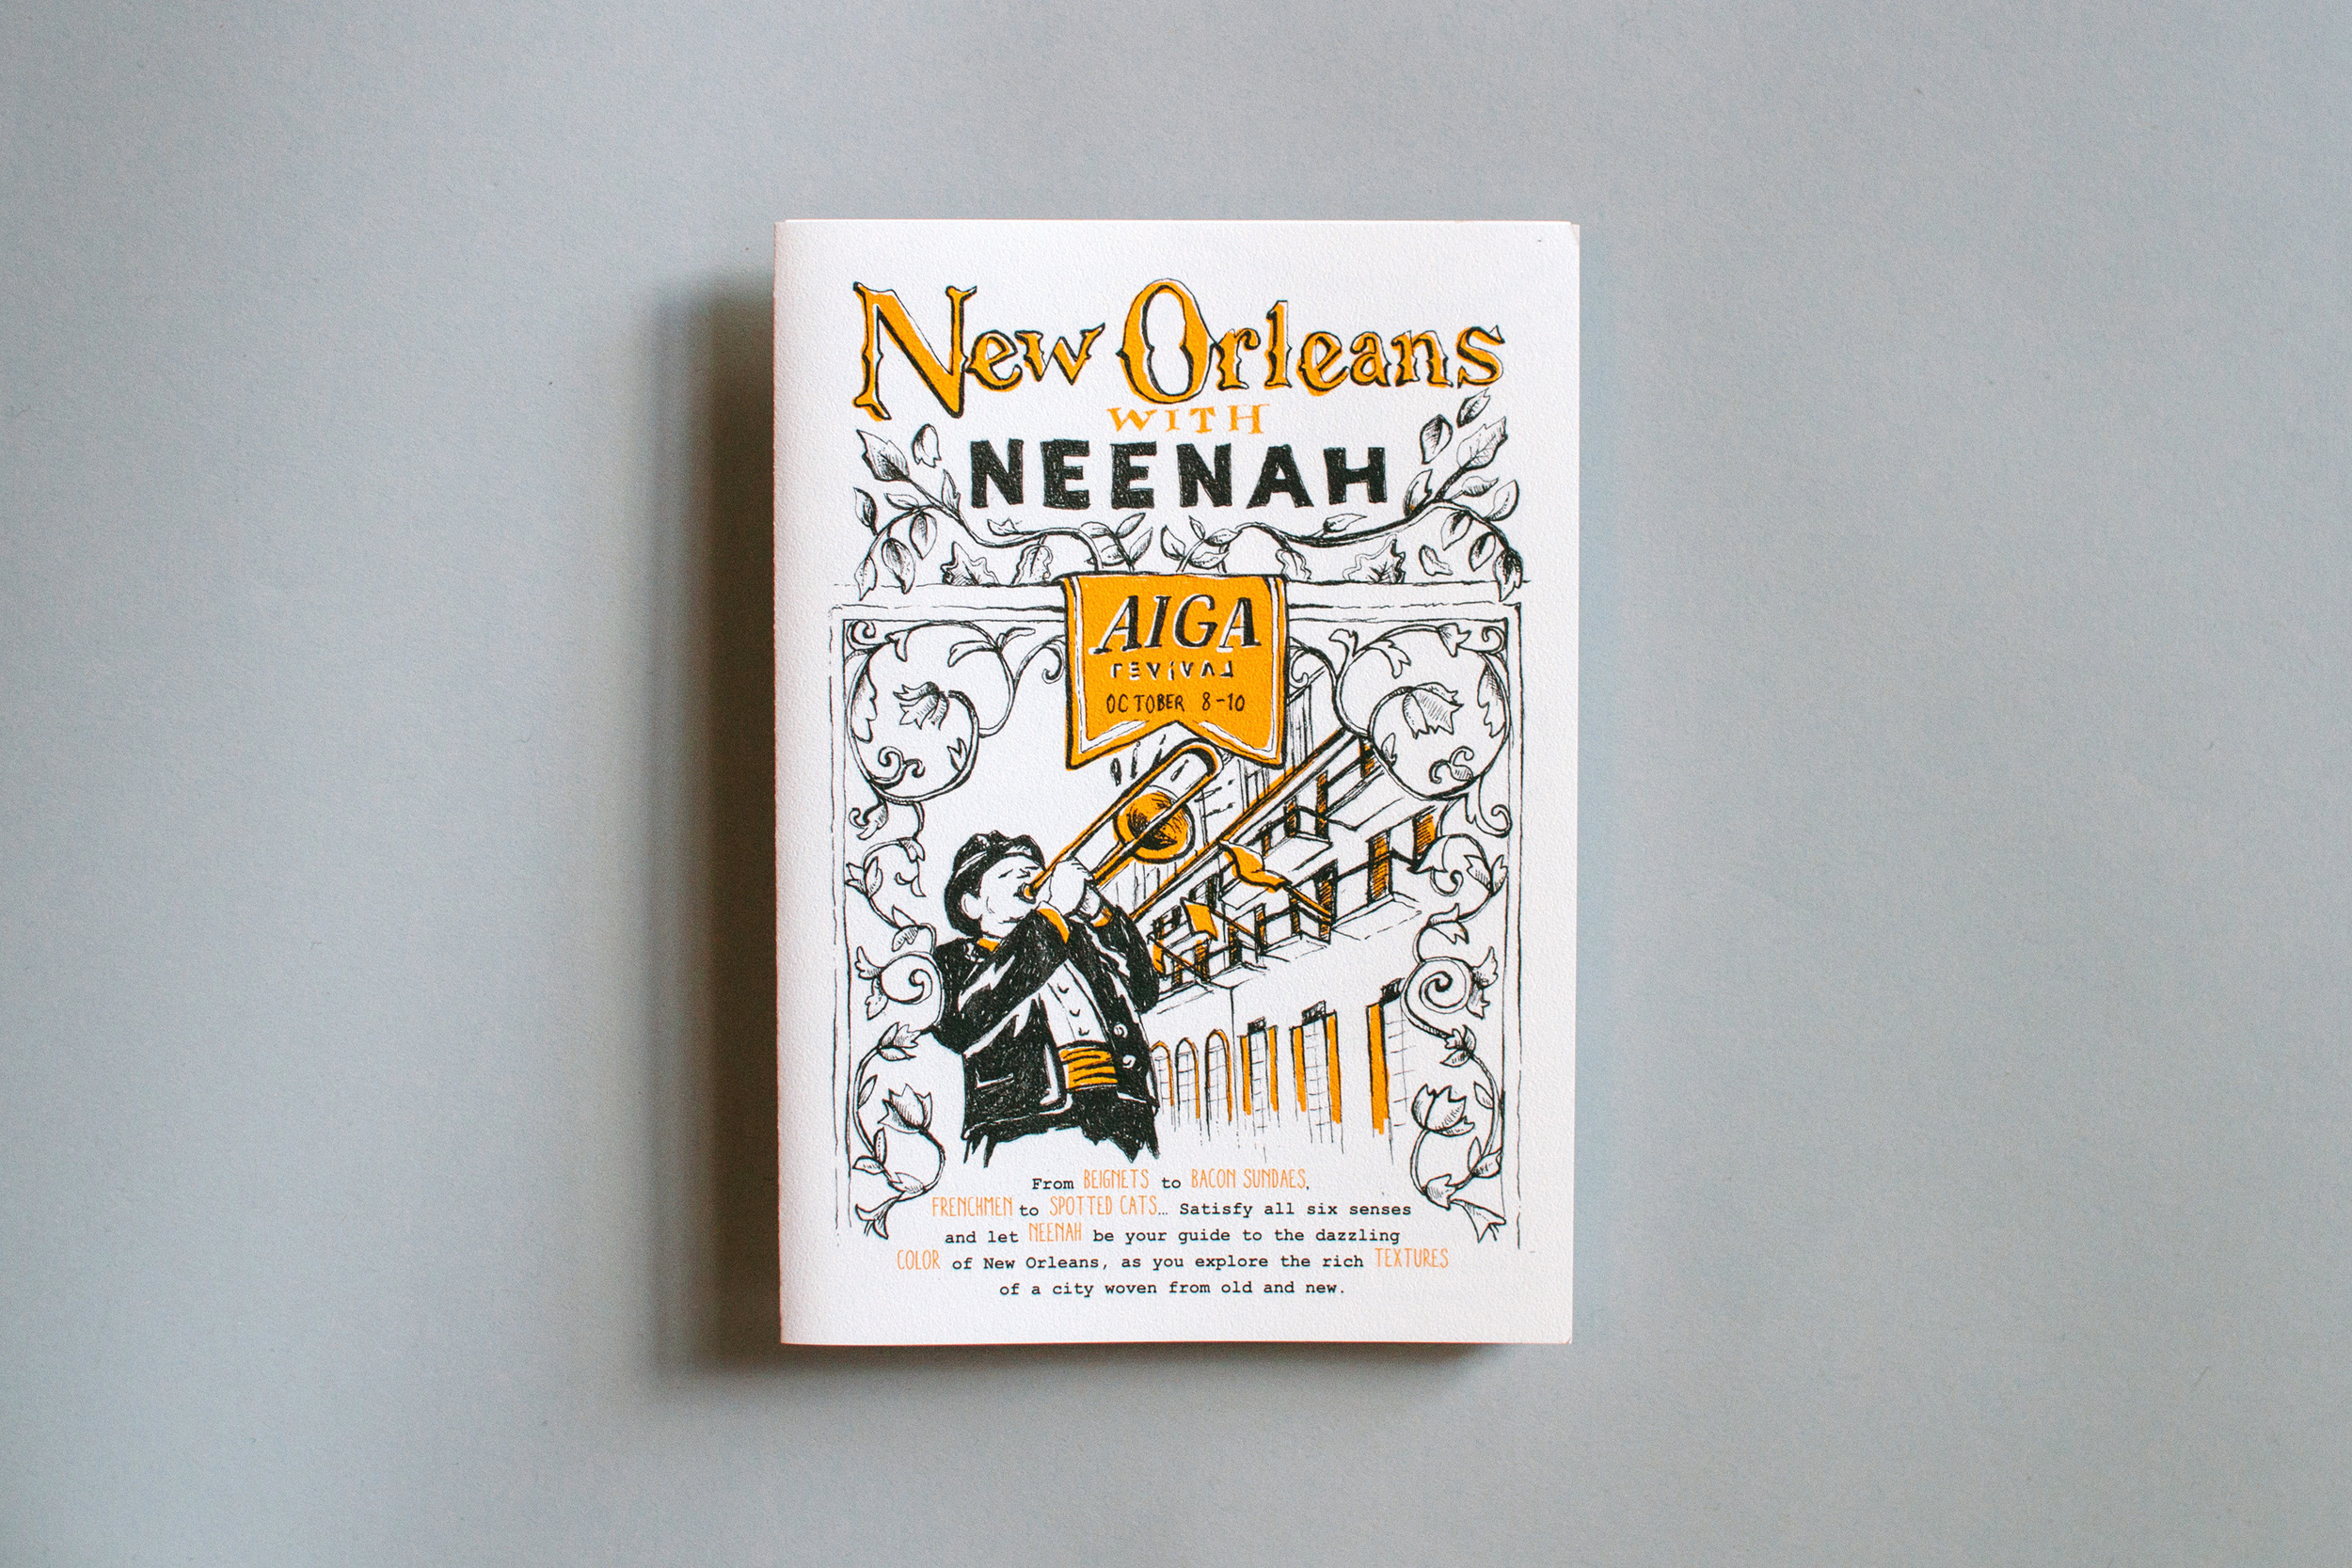 Cover illustration and design of New Orleans with Neenah, for Neenah Paper at the AIGA Conference 2015.